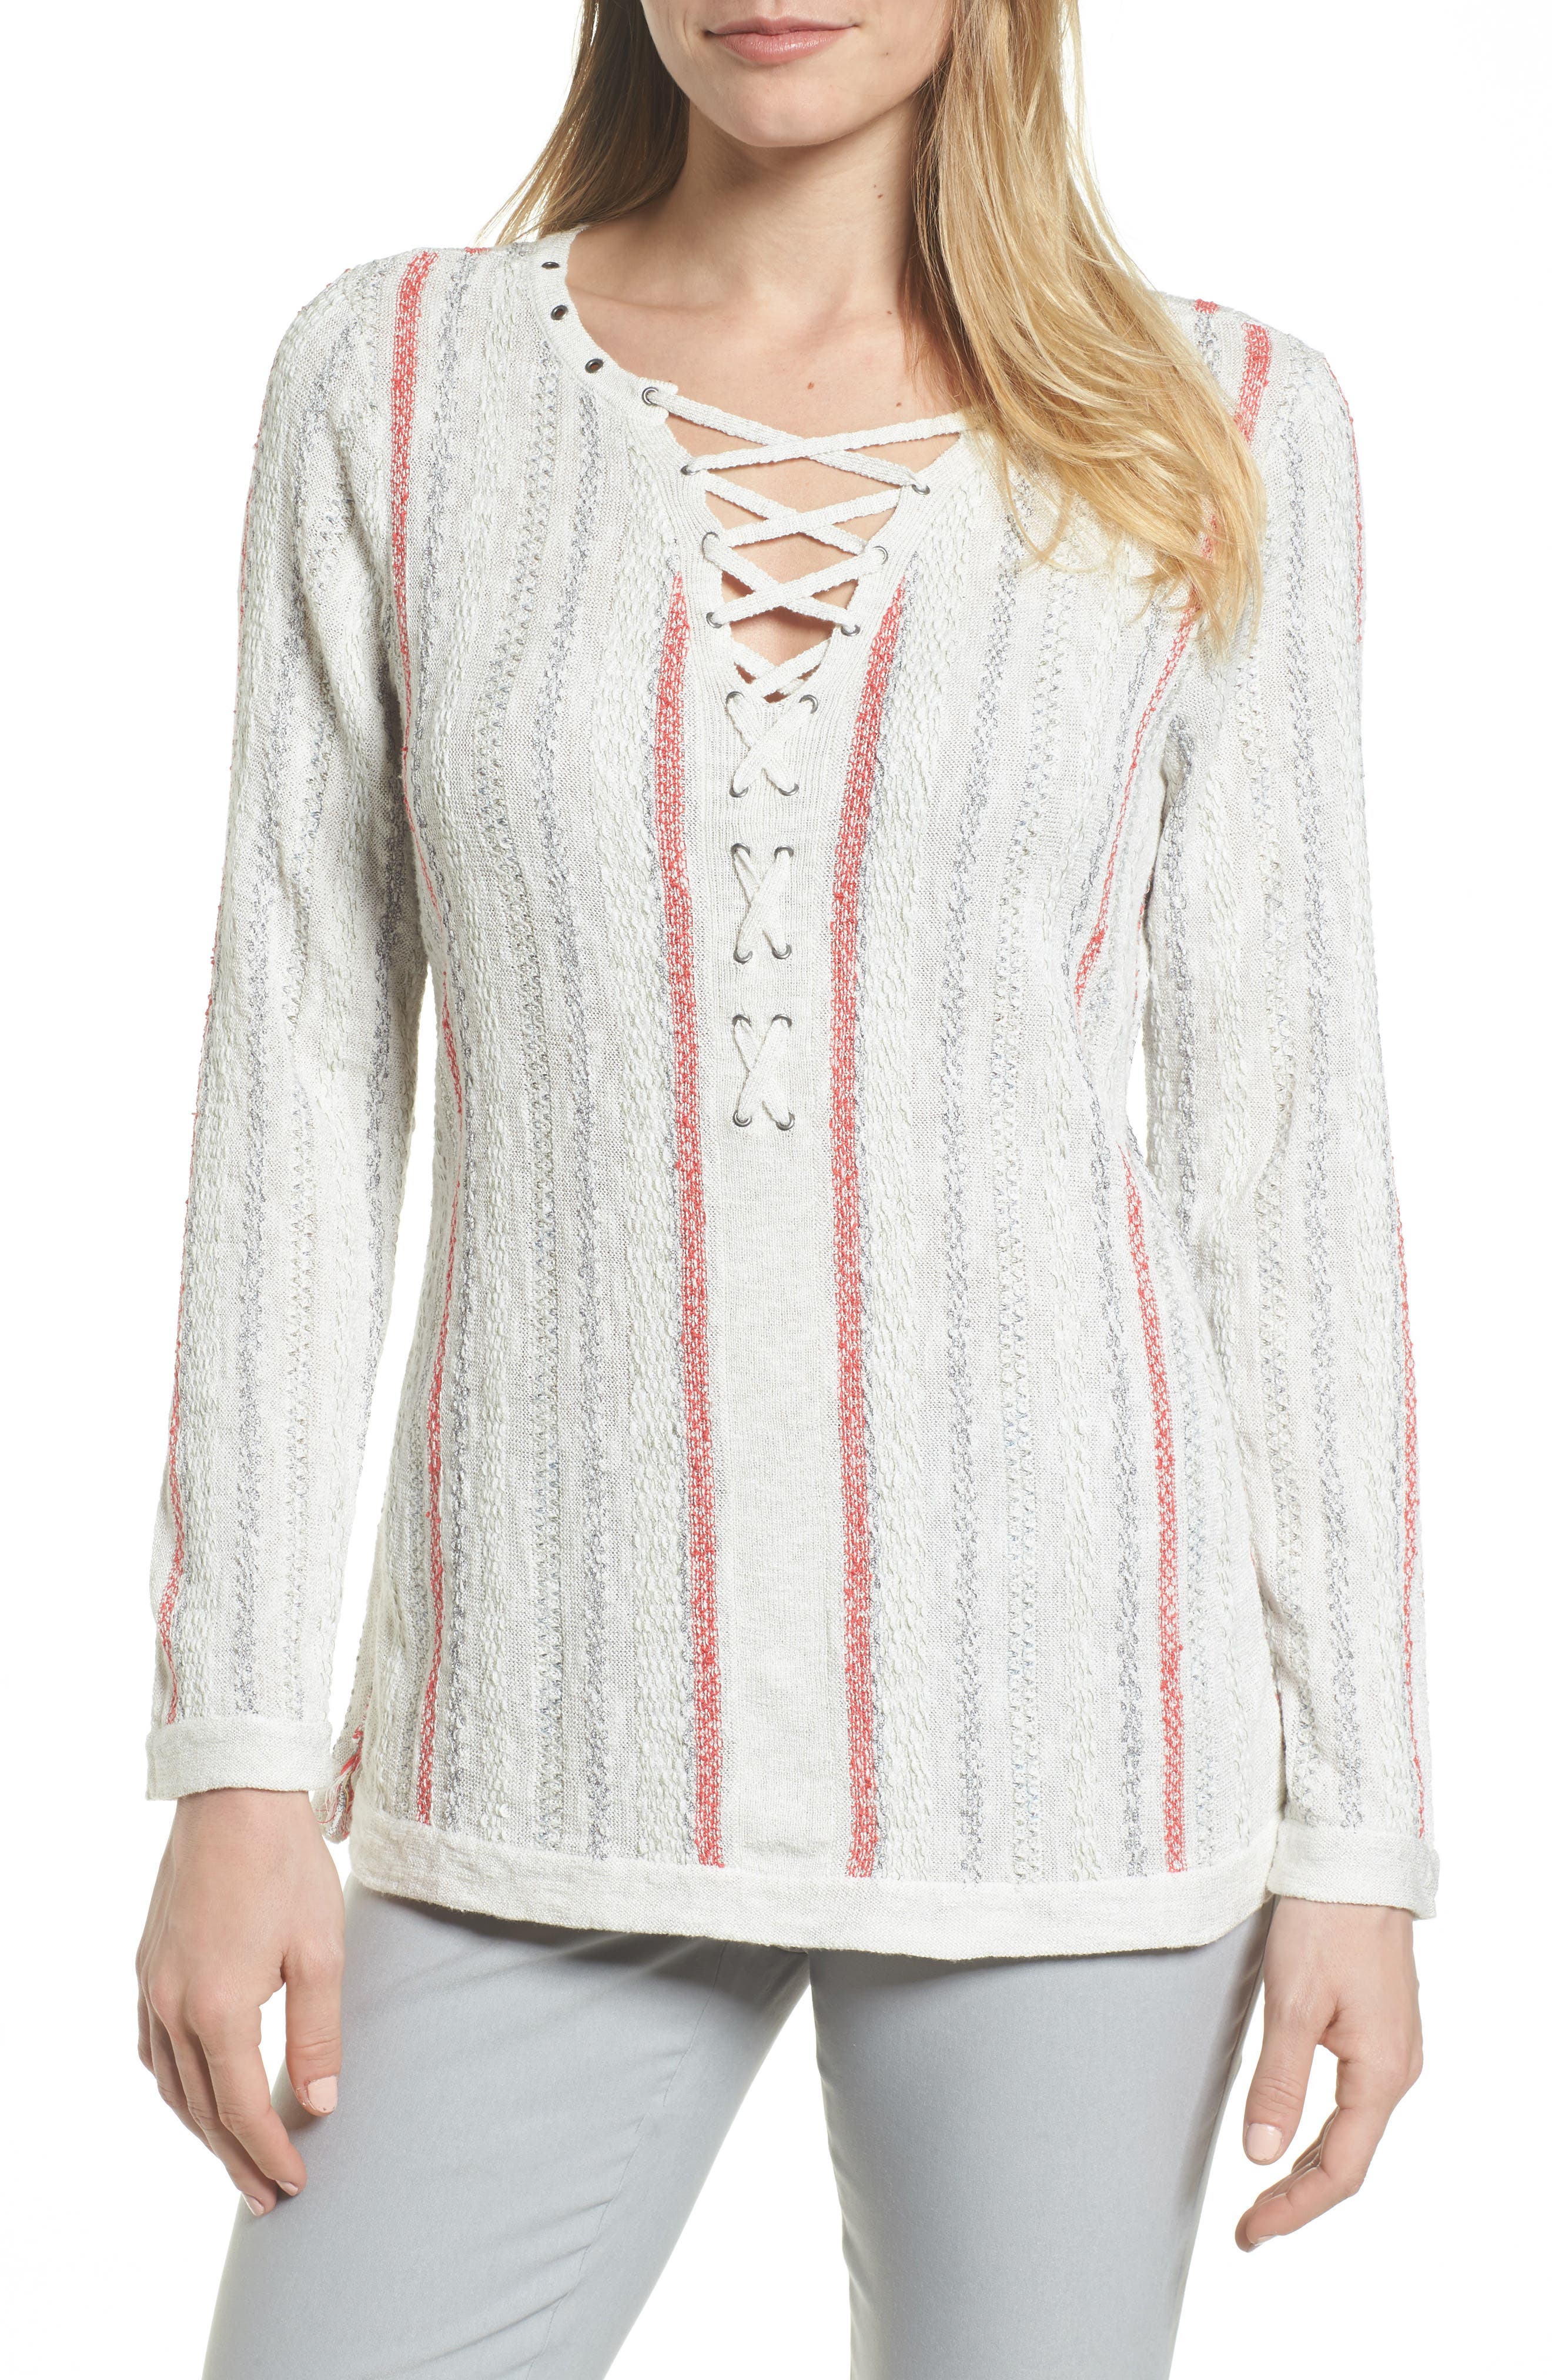 NIC + ZOE Cross Country Lace-Up Top,                             Main thumbnail 1, color,                             Multi